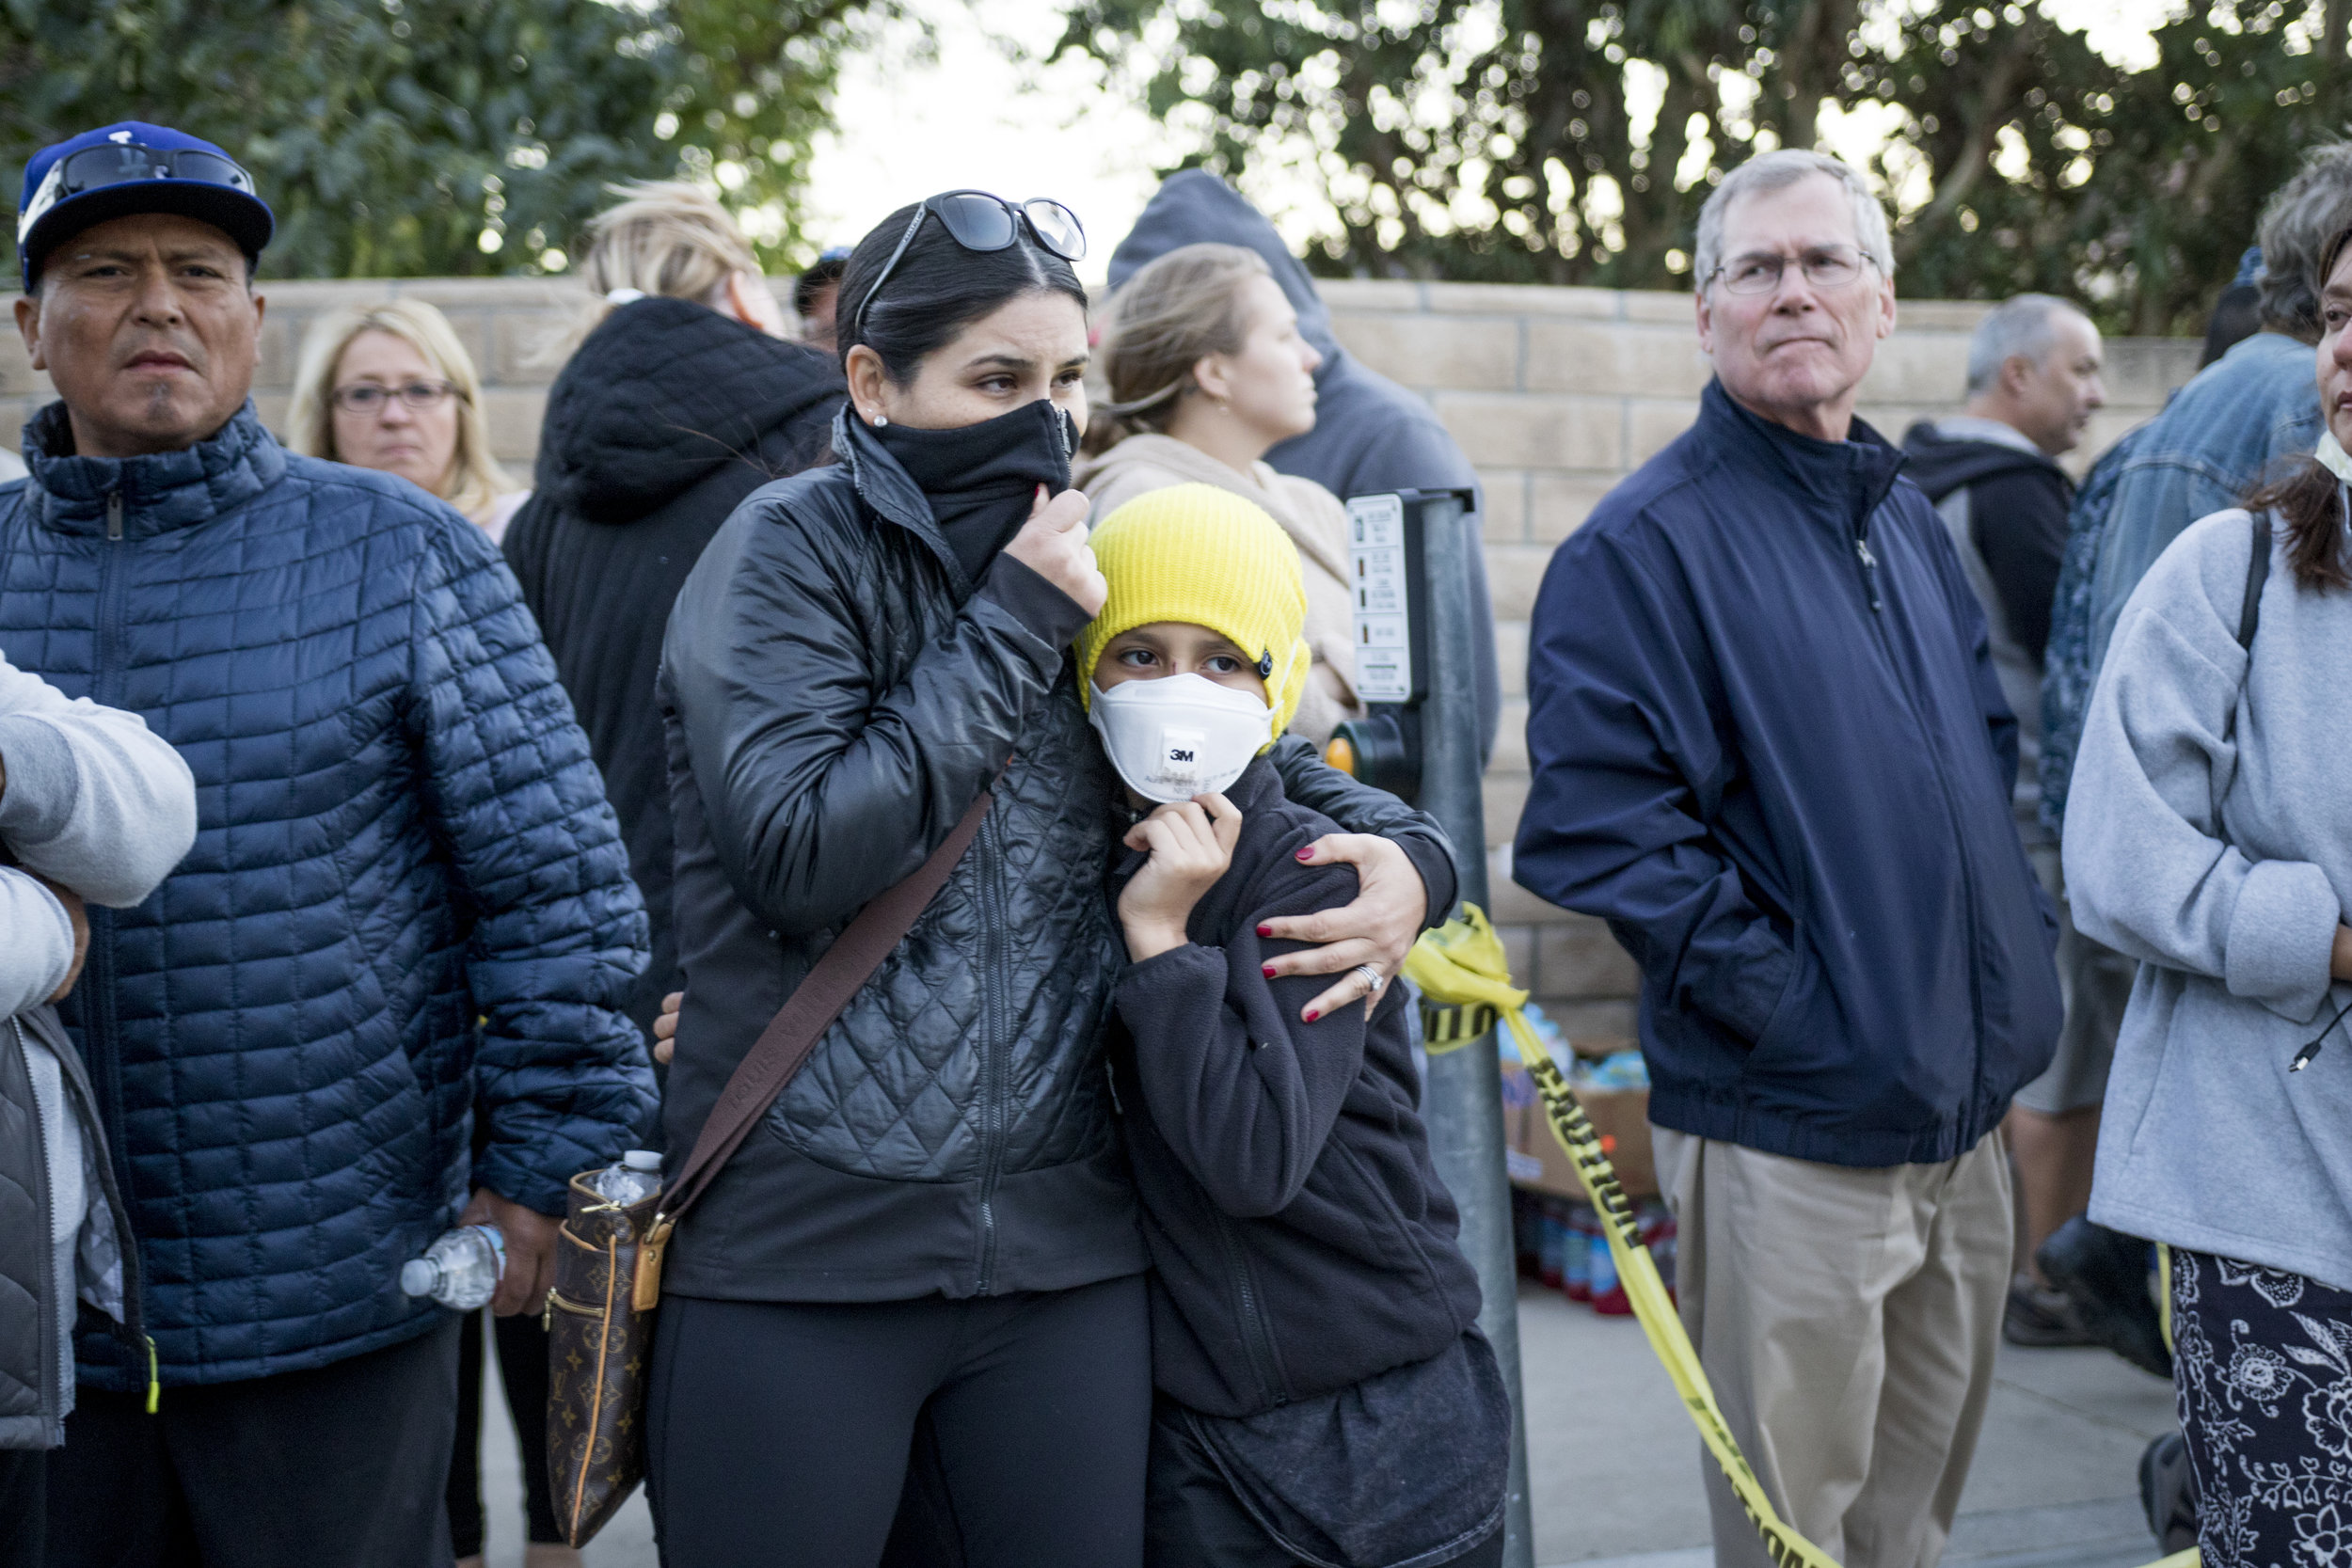 People wait to receive word that they can go back to their homes in Bell Canyon, California on November 12, 2018 after the Woolsey Fire burned through their neighborhoods. (Zane Meyer-Thornton/Corsair Photo)